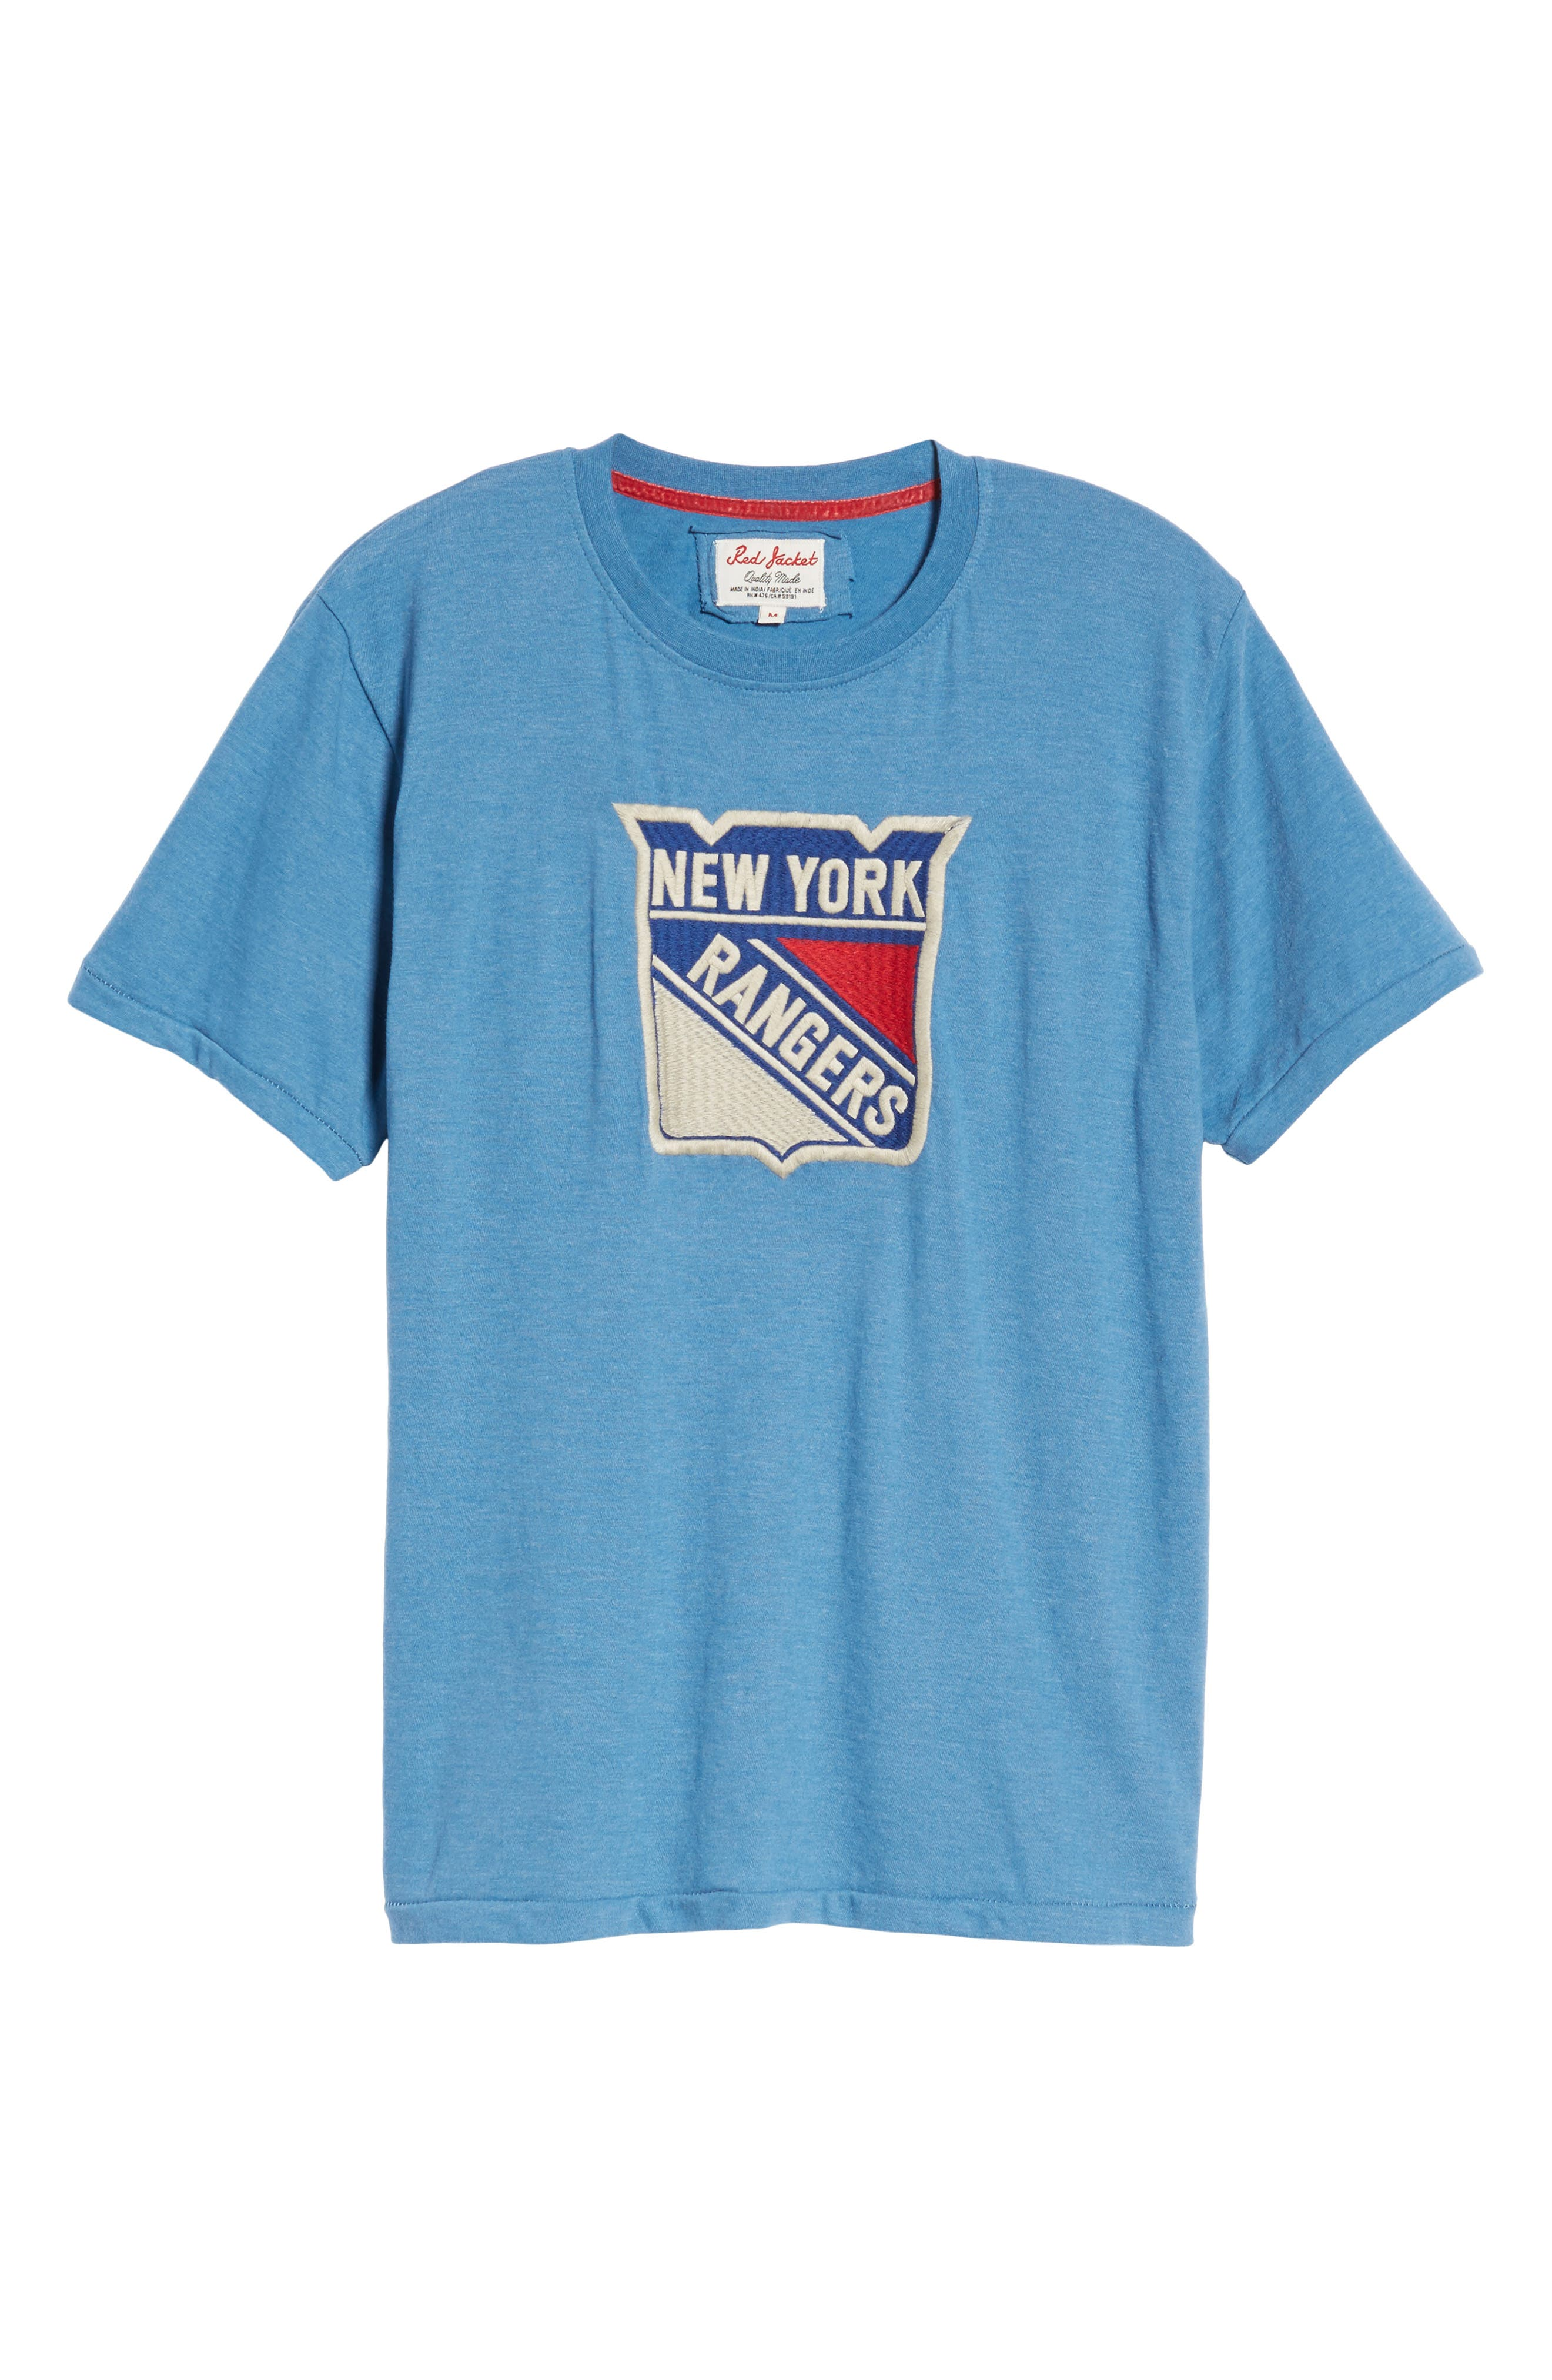 Hillwood New York Rangers T-Shirt,                             Alternate thumbnail 6, color,                             400